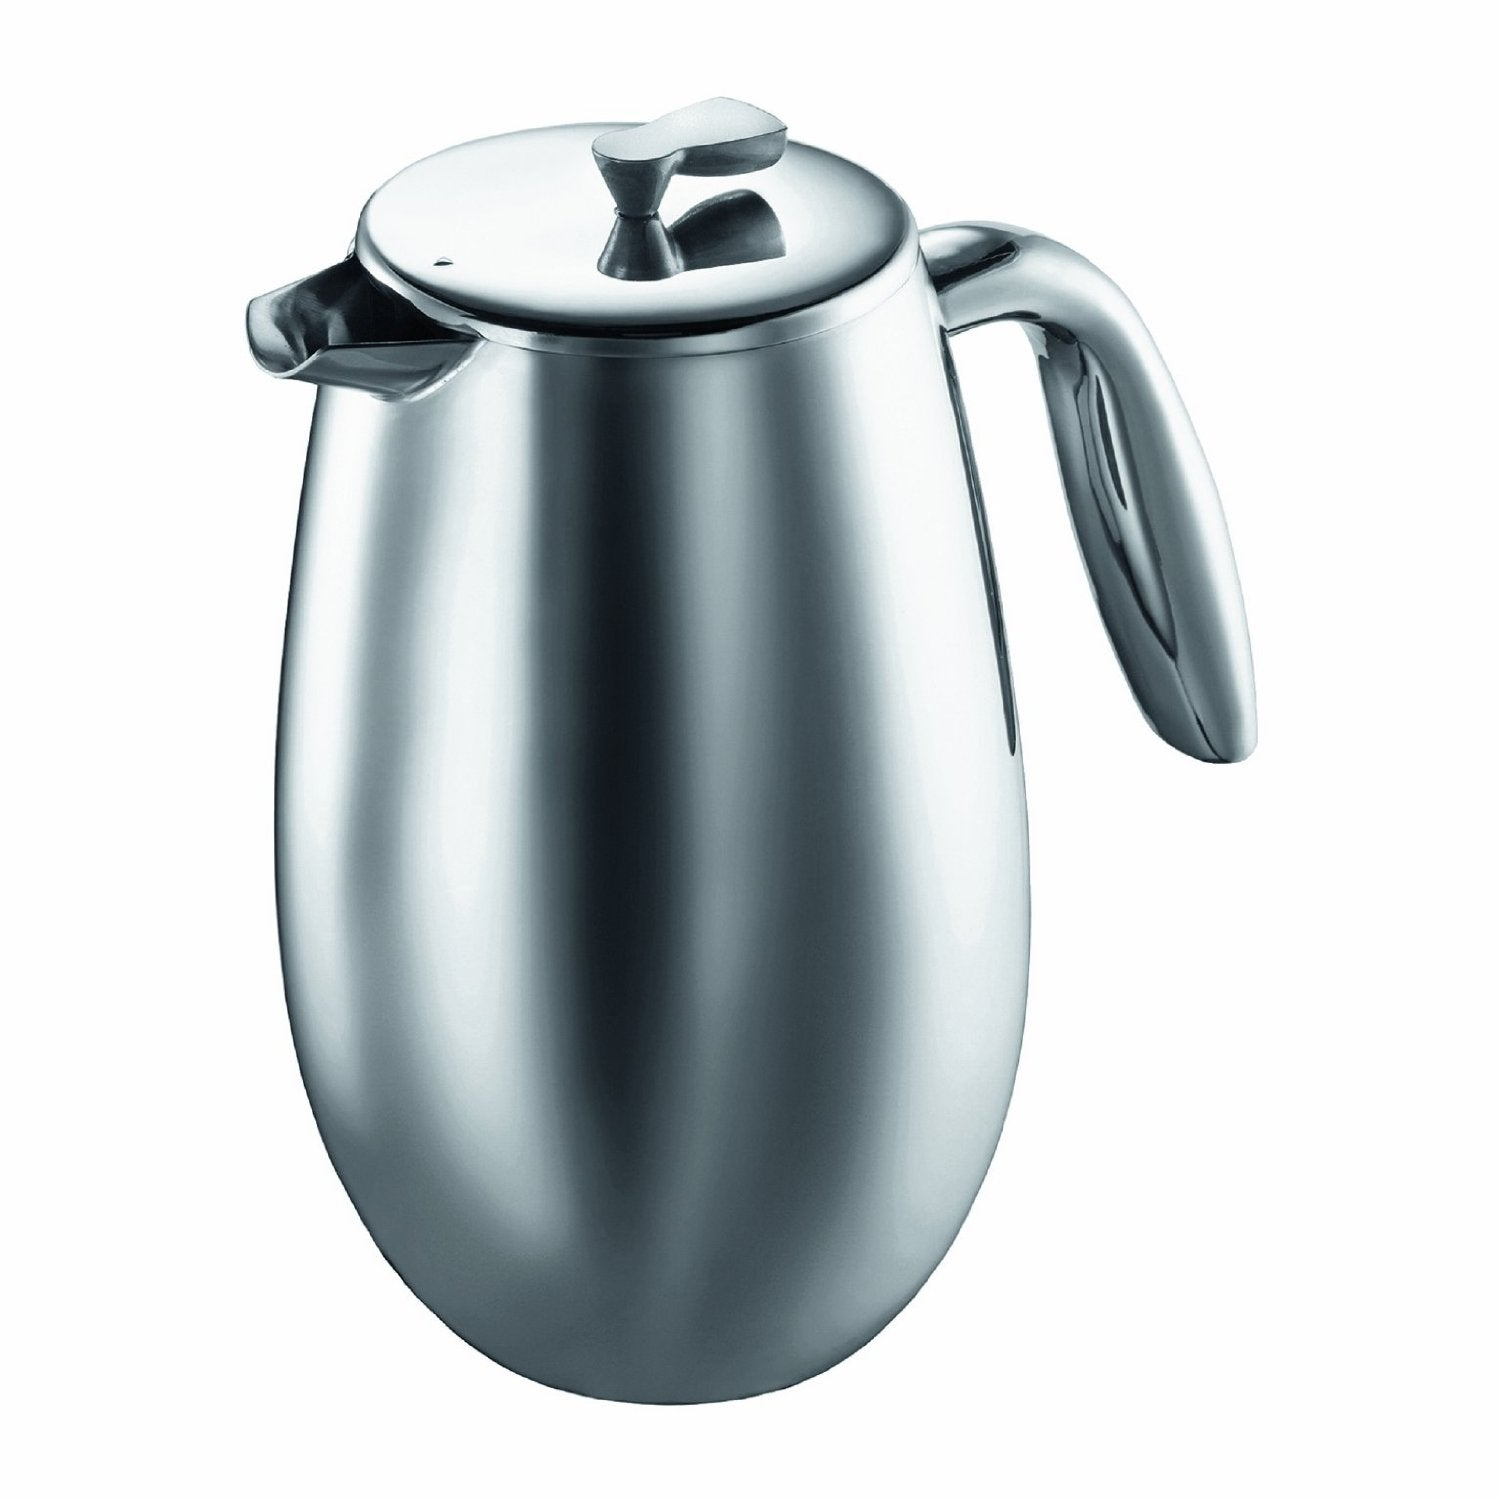 Bodum COLUMBIA Thermal French Press Coffee Maker, Stainless Steel (34 Ounces) - Nomad Coffee Club